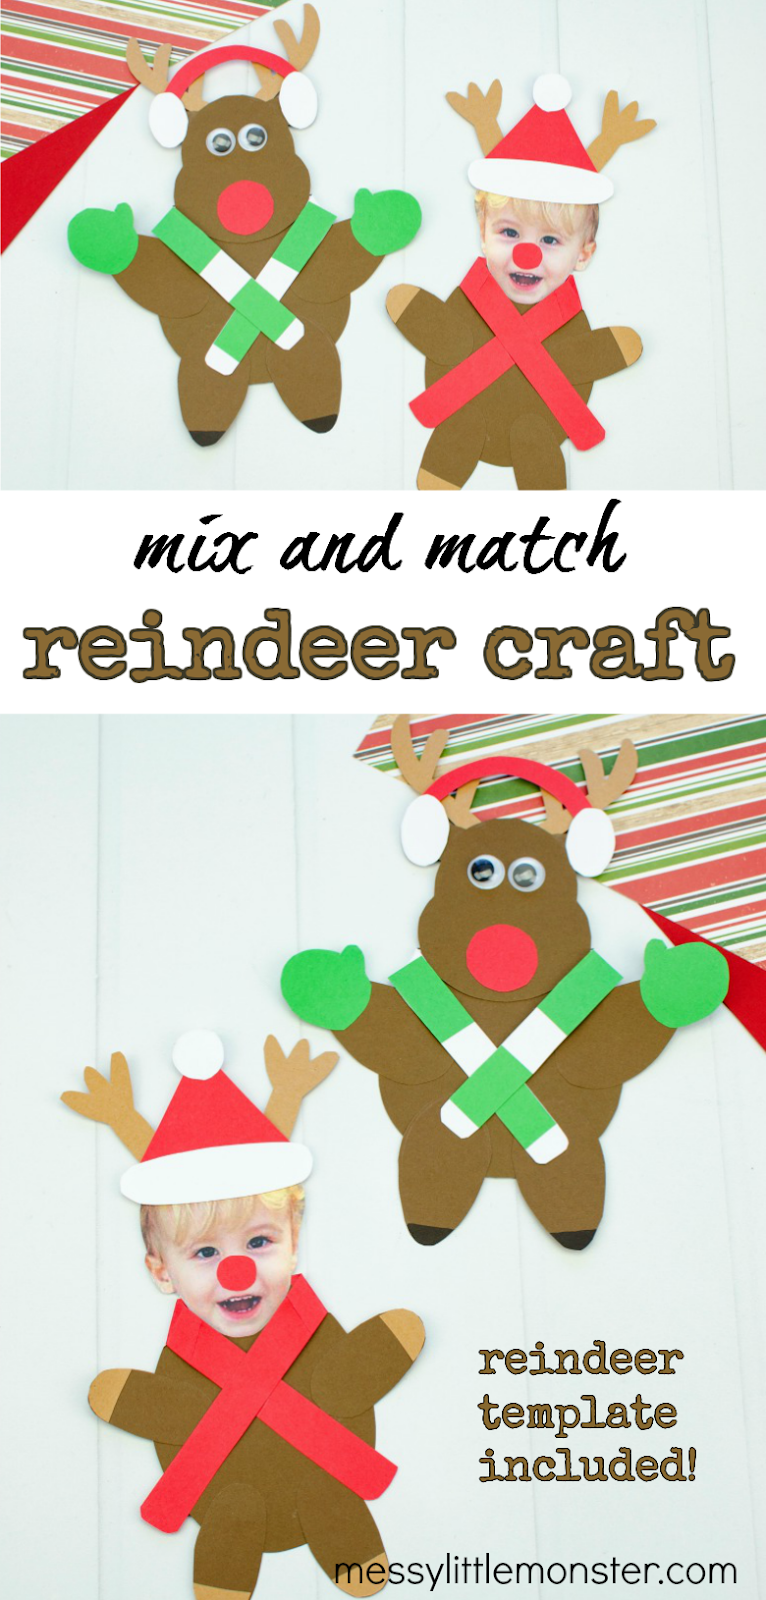 Mix and match paper reindeer craft for kids. Printable reindeer template included.